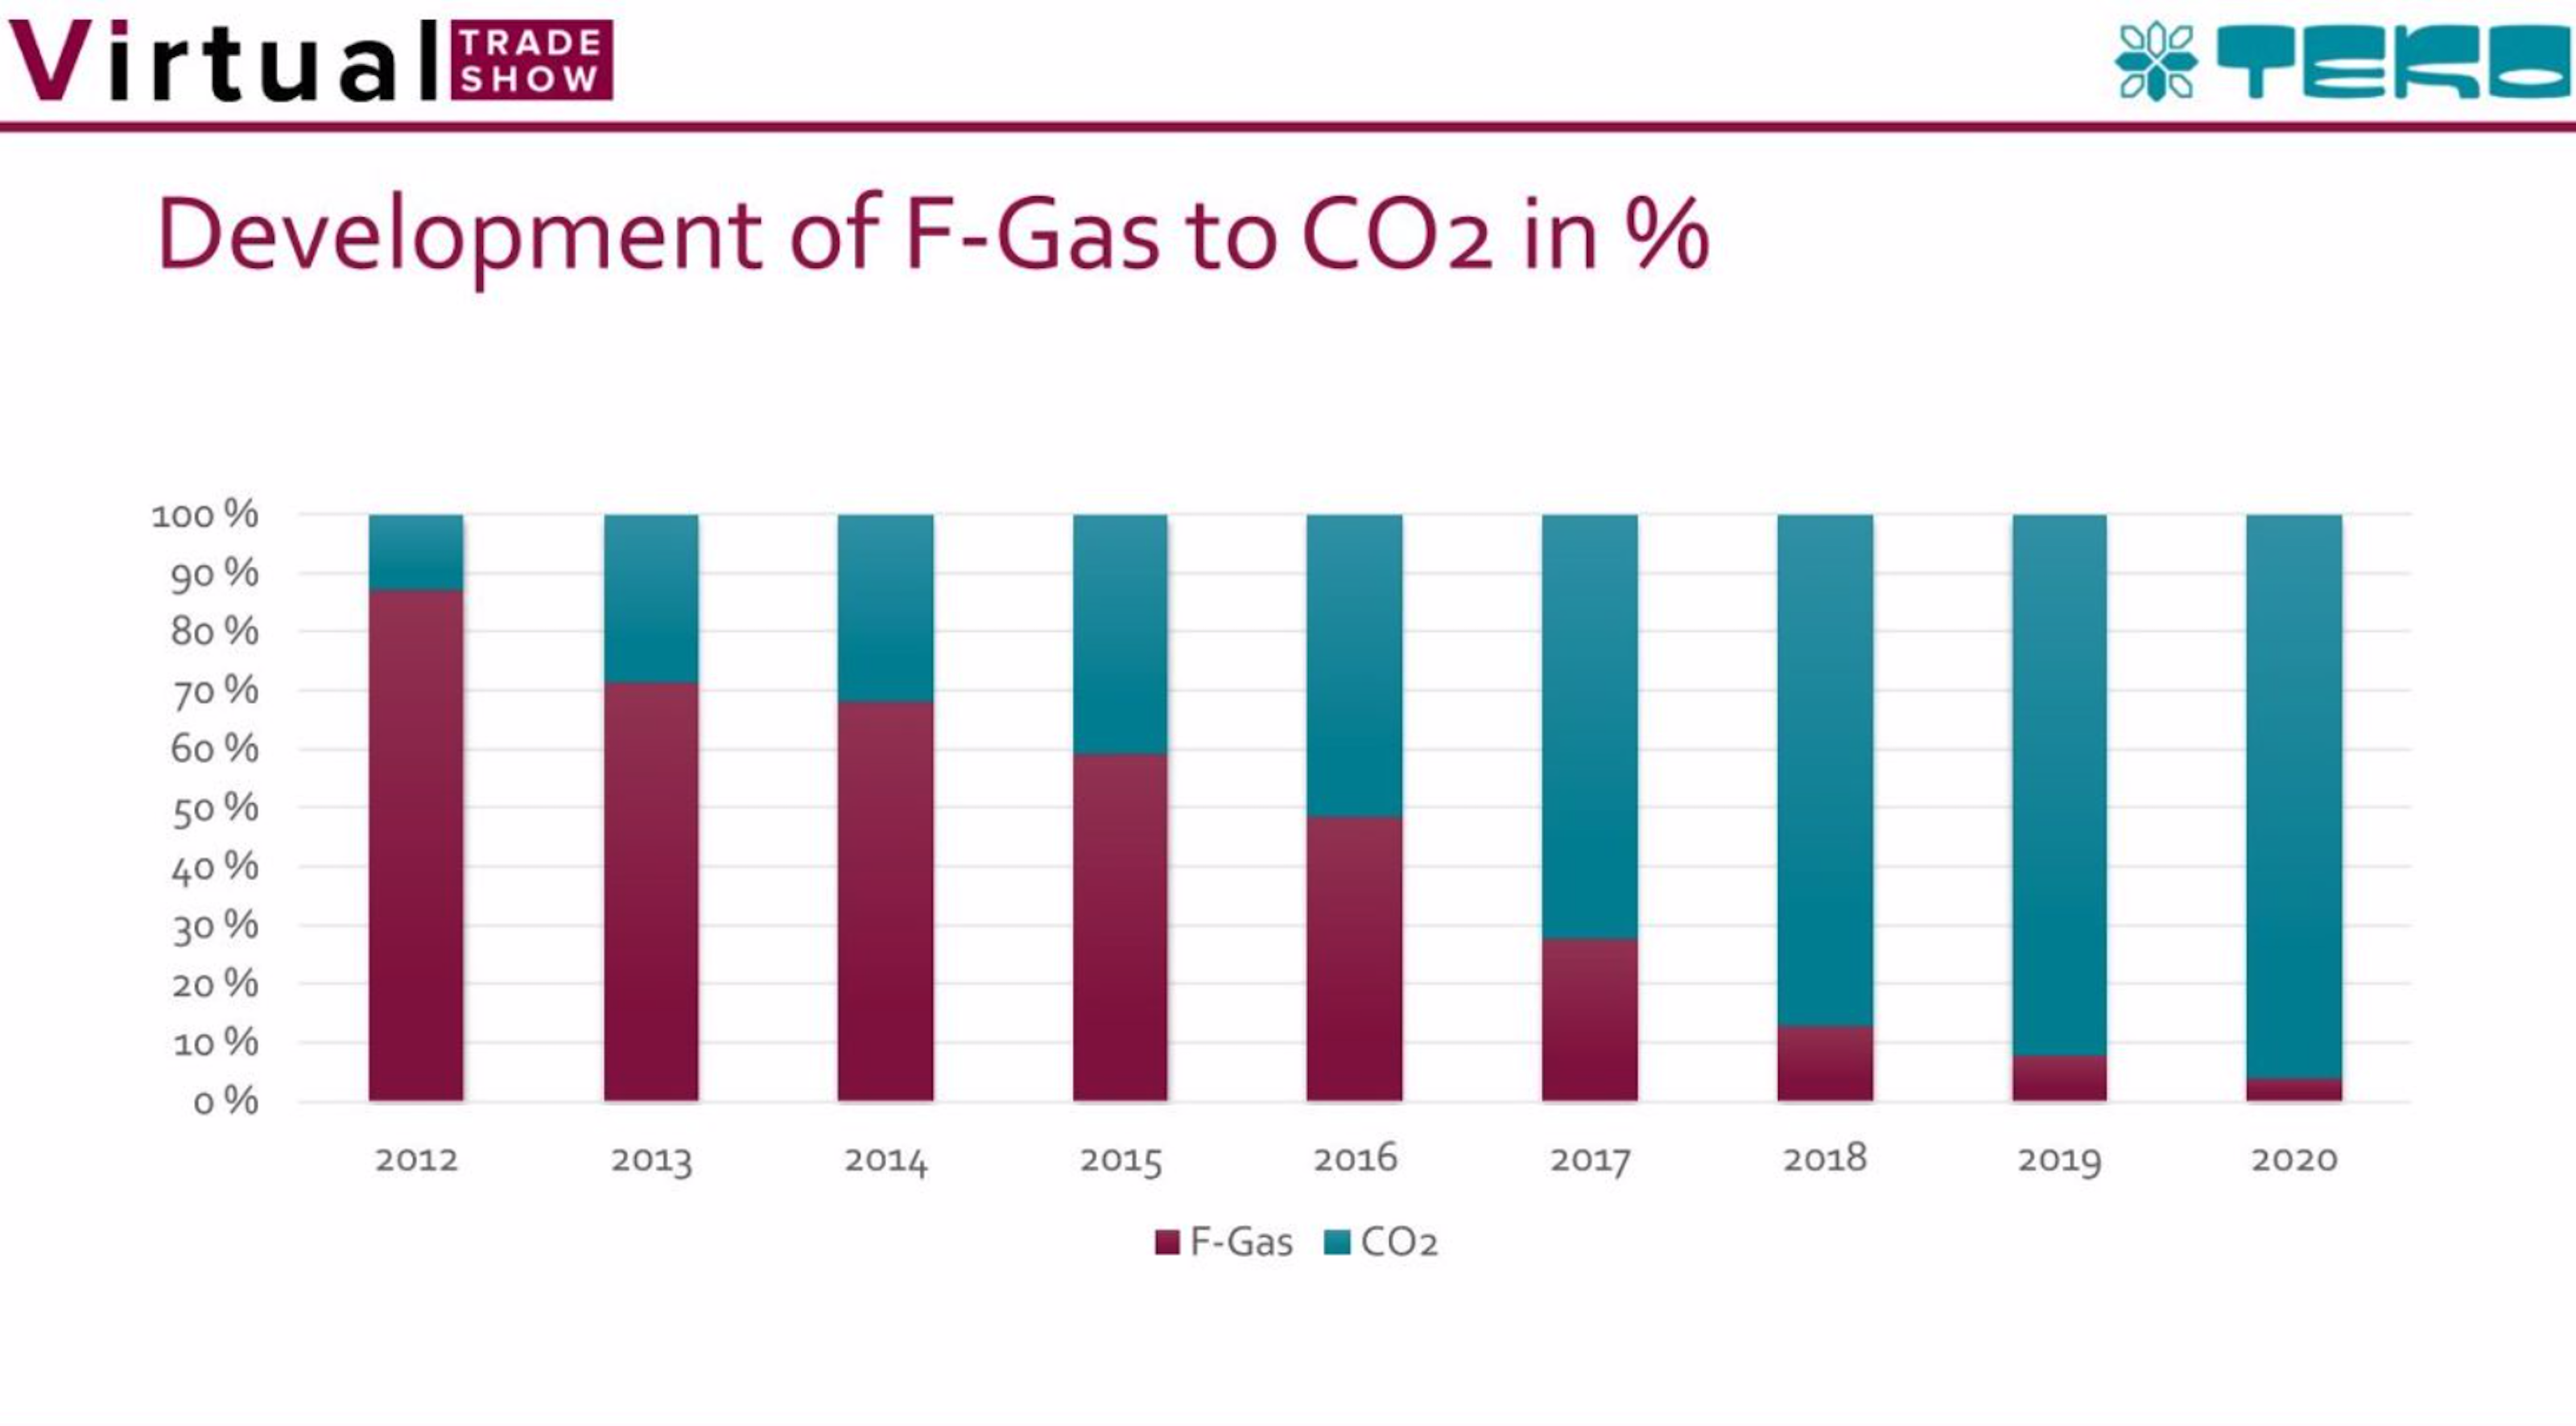 Evolution of TEKO German company's business that, in about one decade, has shifted from dealing mainly with HFC systems to treating almost exclusively CO2 systems, as consequence of the F-gas Regulation (Credits: TEKO during VTS2021)